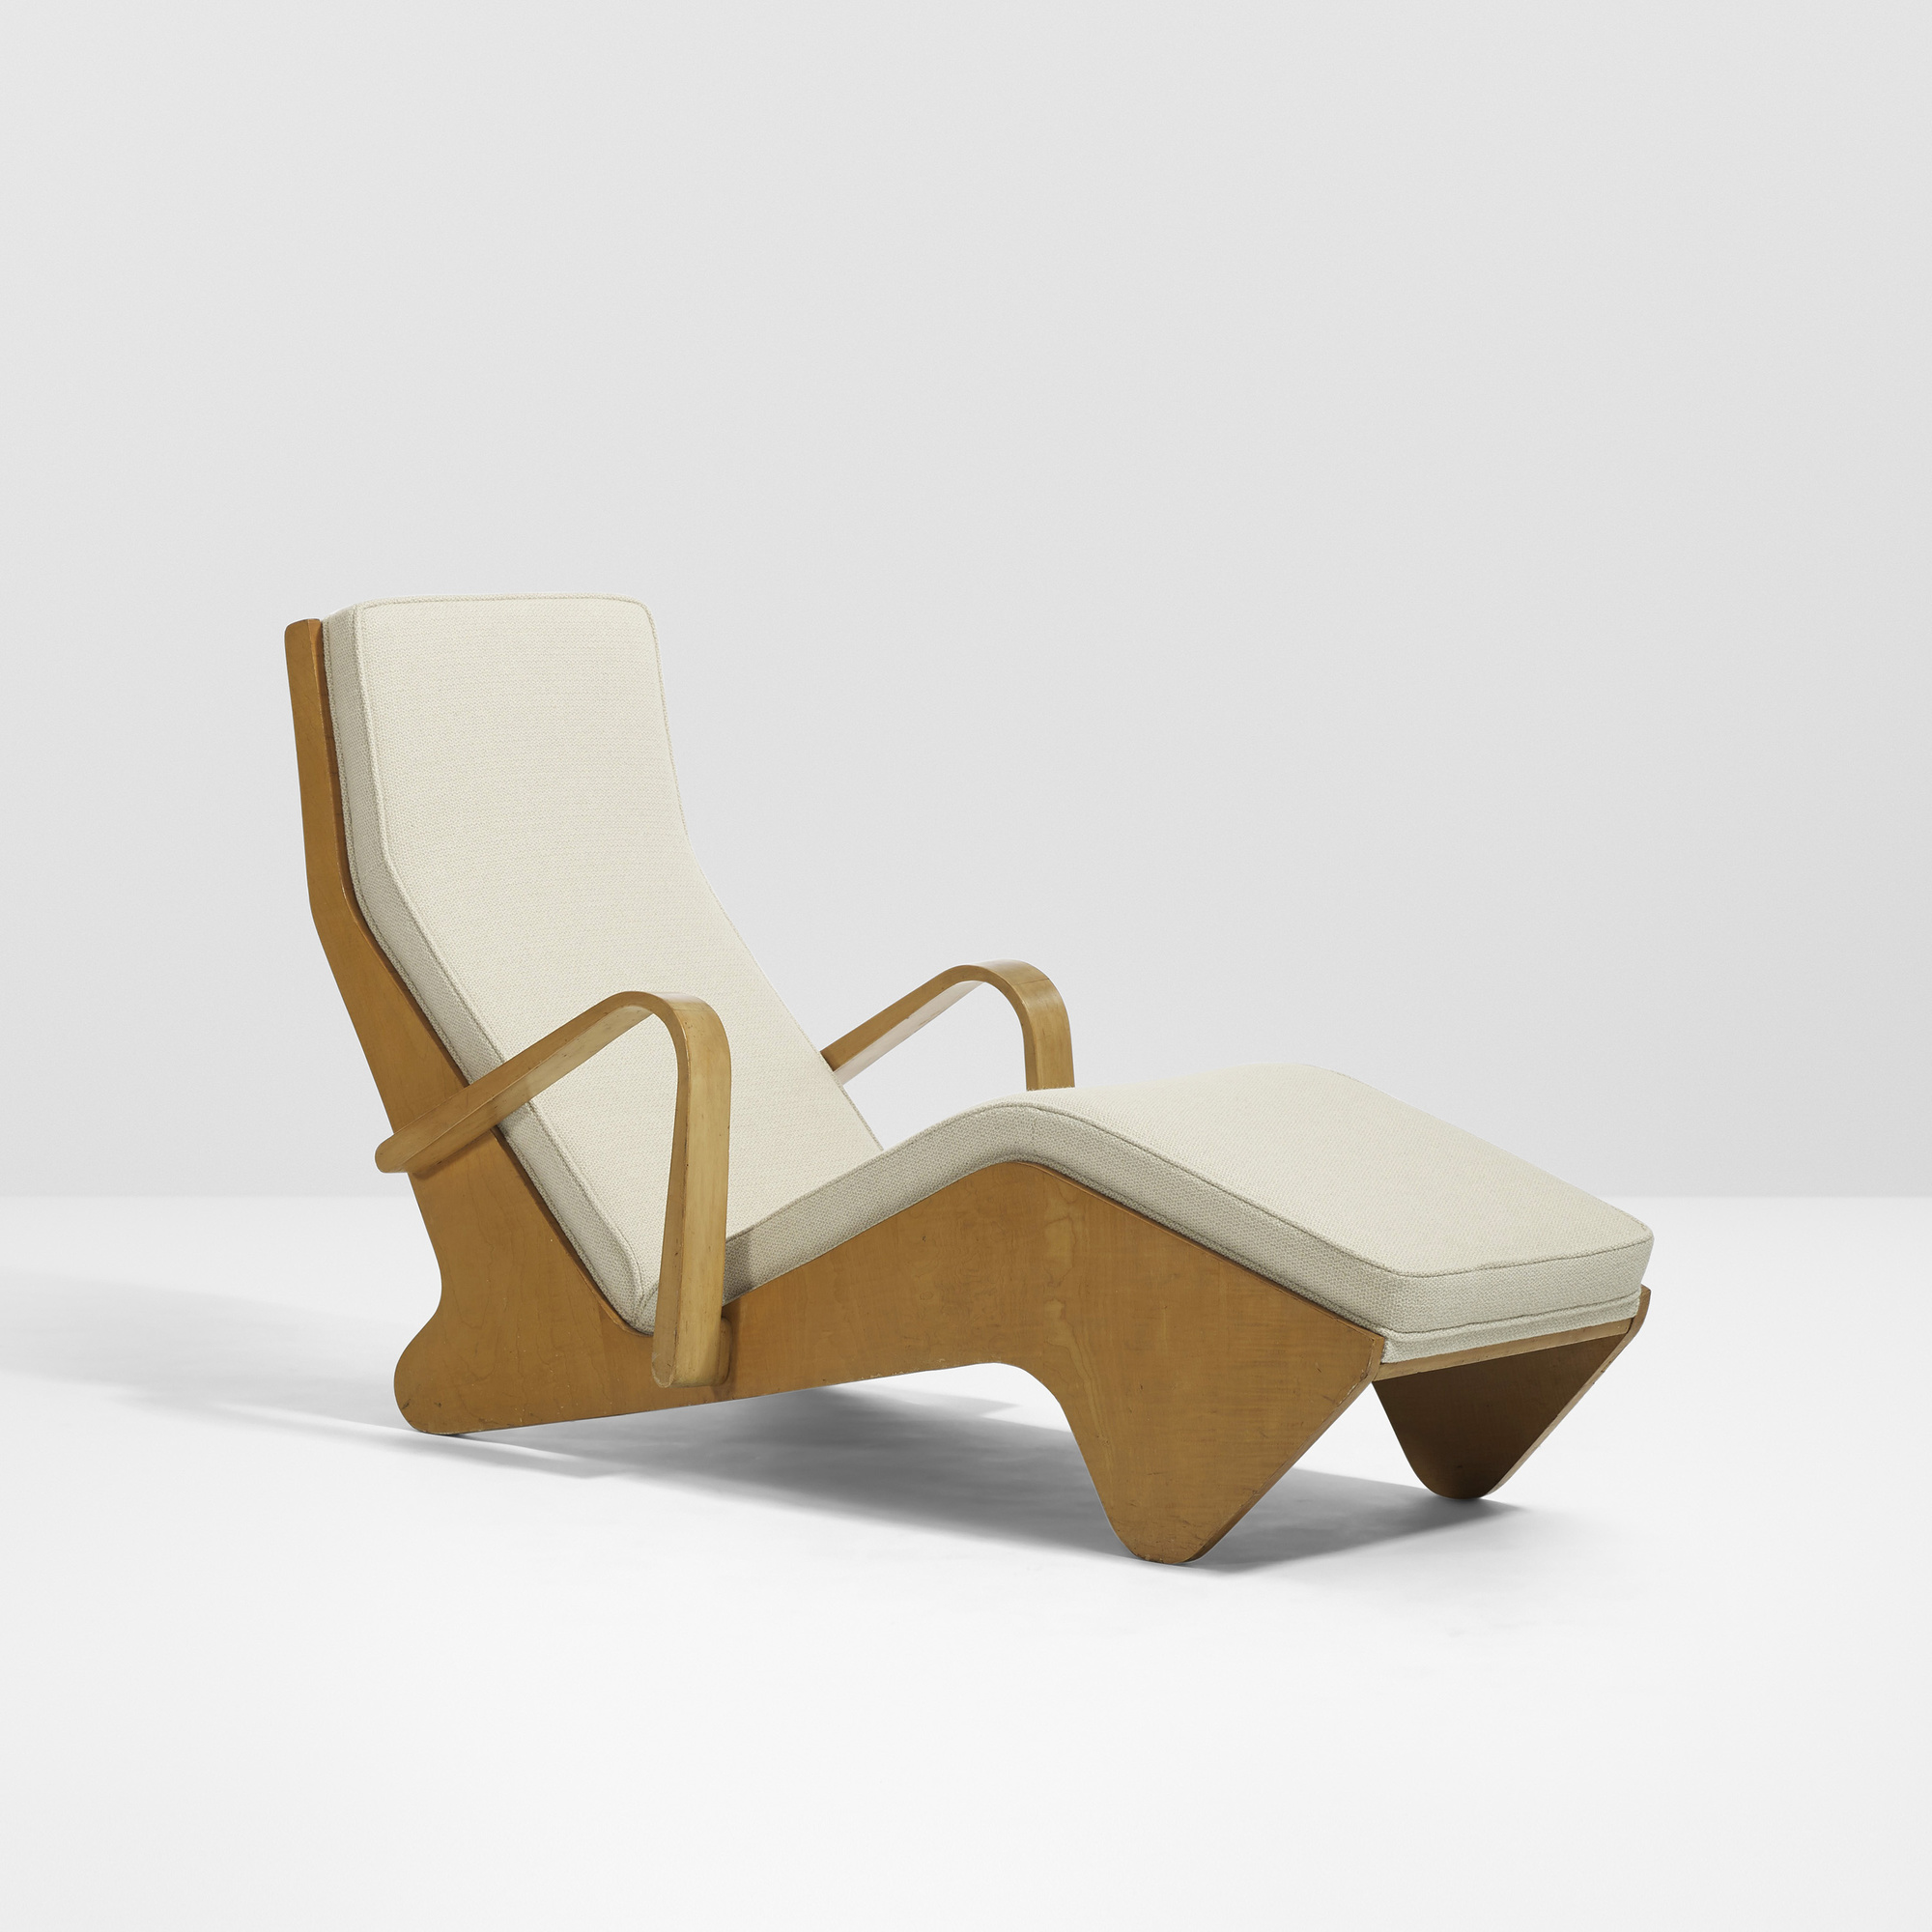 19 Marcel Breuer Rare Chaise Lounge 2 Of 3